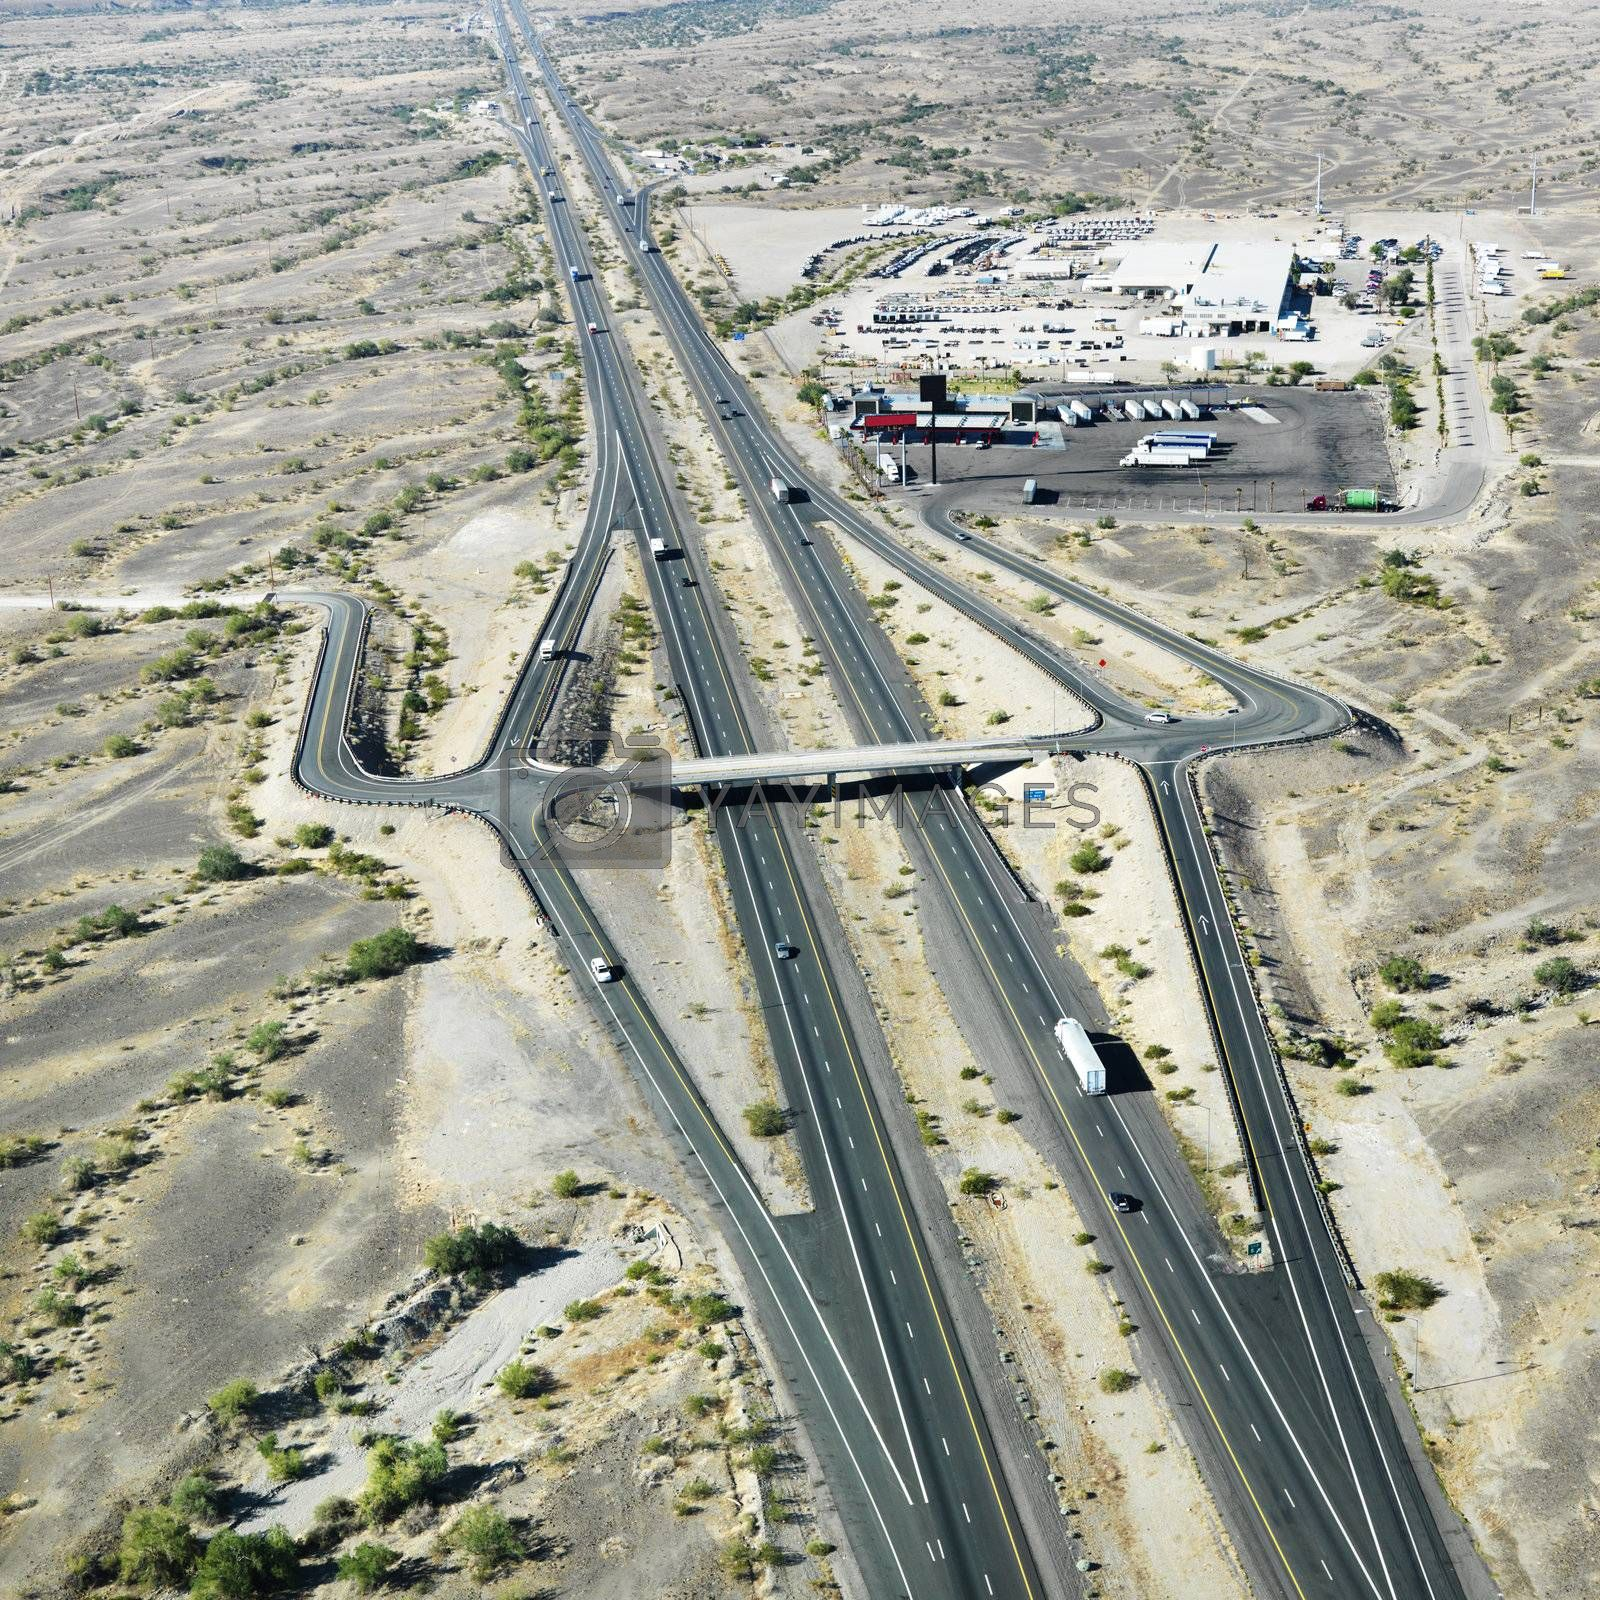 Aerial view of interstate 10 in southwest desert landscape of Arizona.